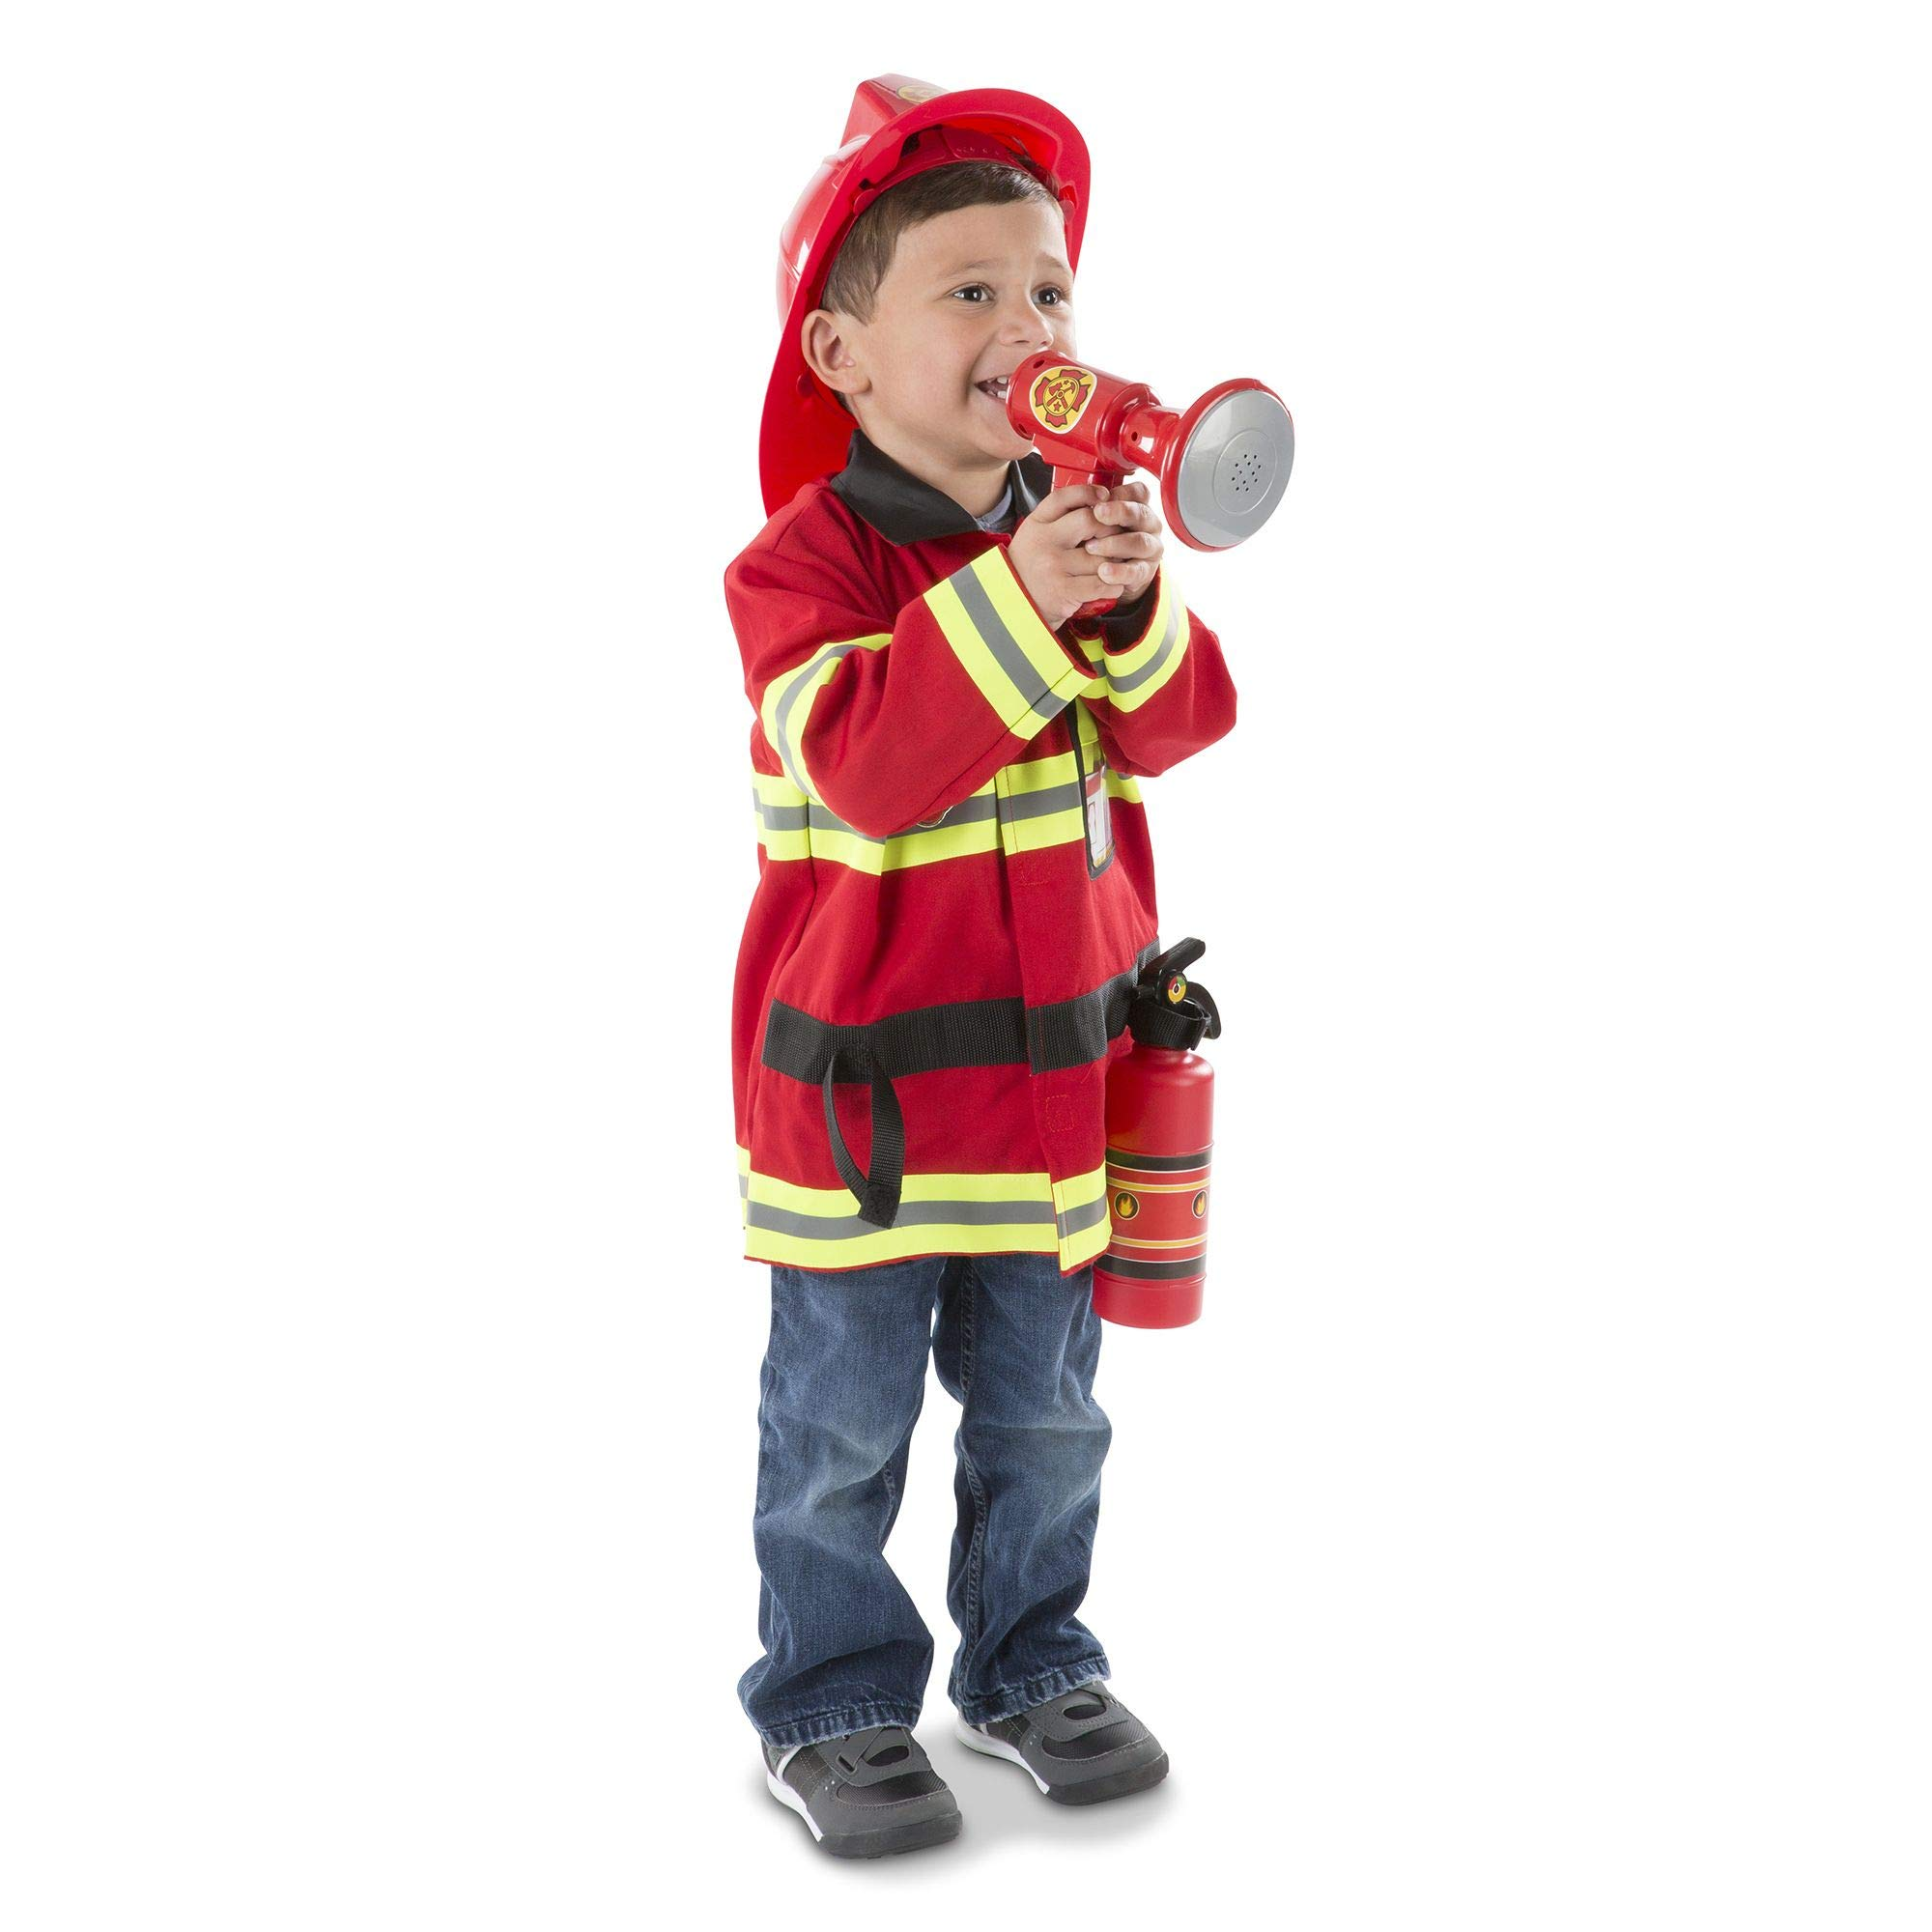 Melissa & Doug Fire Chief Role Play Costume Set (Pretend Play, Frustration-Free Packaging, Bright Red, 17.5'' H x 24'' W x 2'' L, Great Gift for Girls and Boys - Best for 3, 4, 5, and 6 Year Olds) by Melissa & Doug